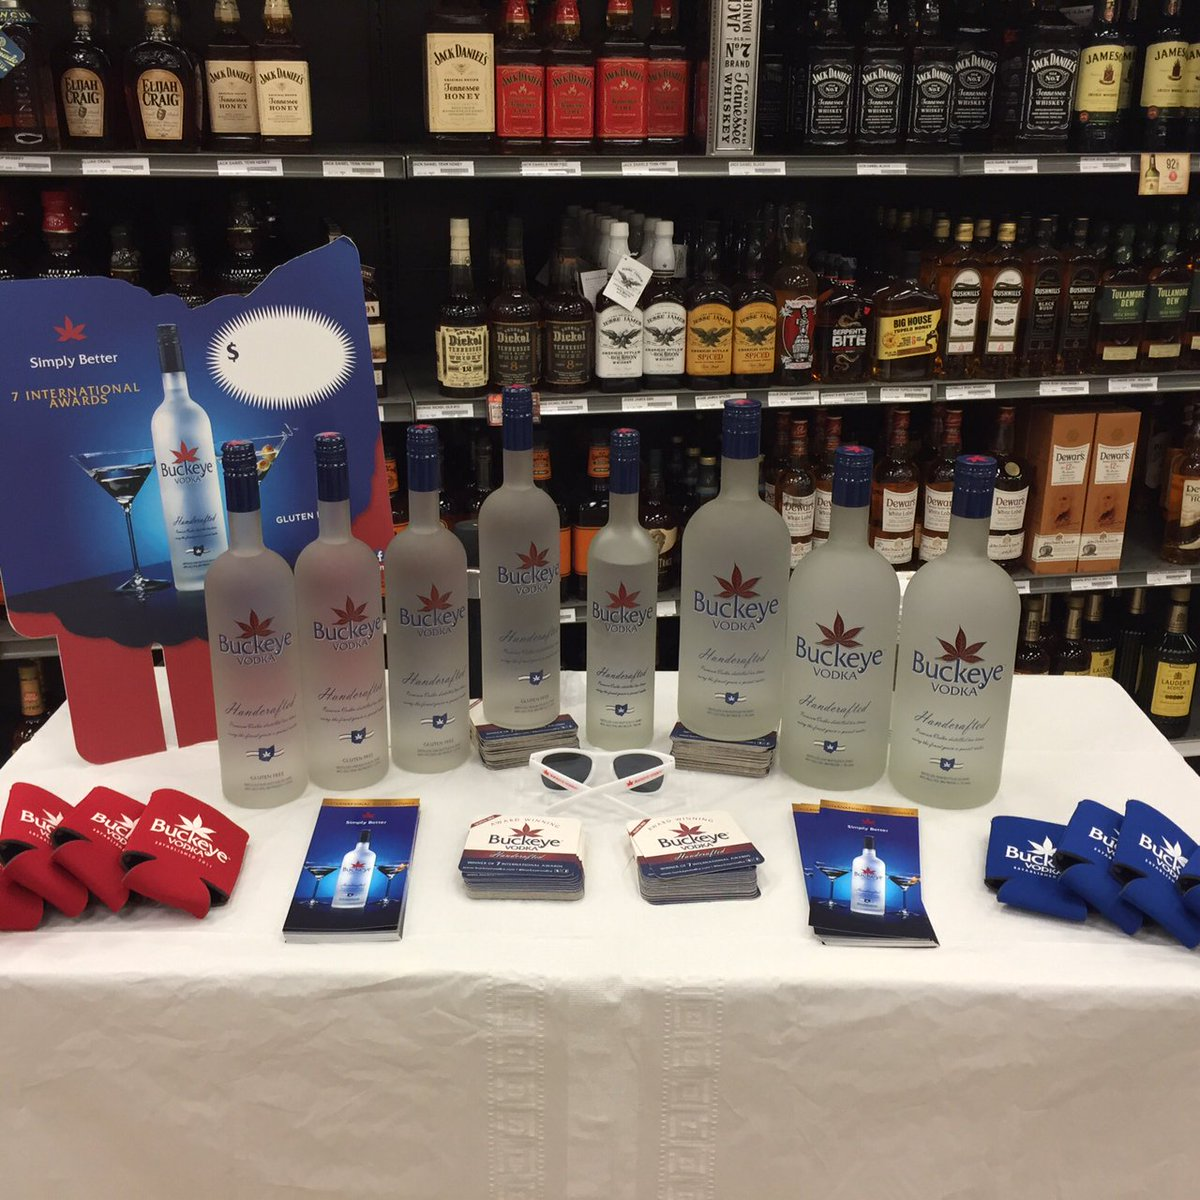 Stop by Giant Eagle on Transportation Blvd. in Garfield Heights - right now and have a taste of #BuckeyeVodka https://t.co/svsVwd3RCR